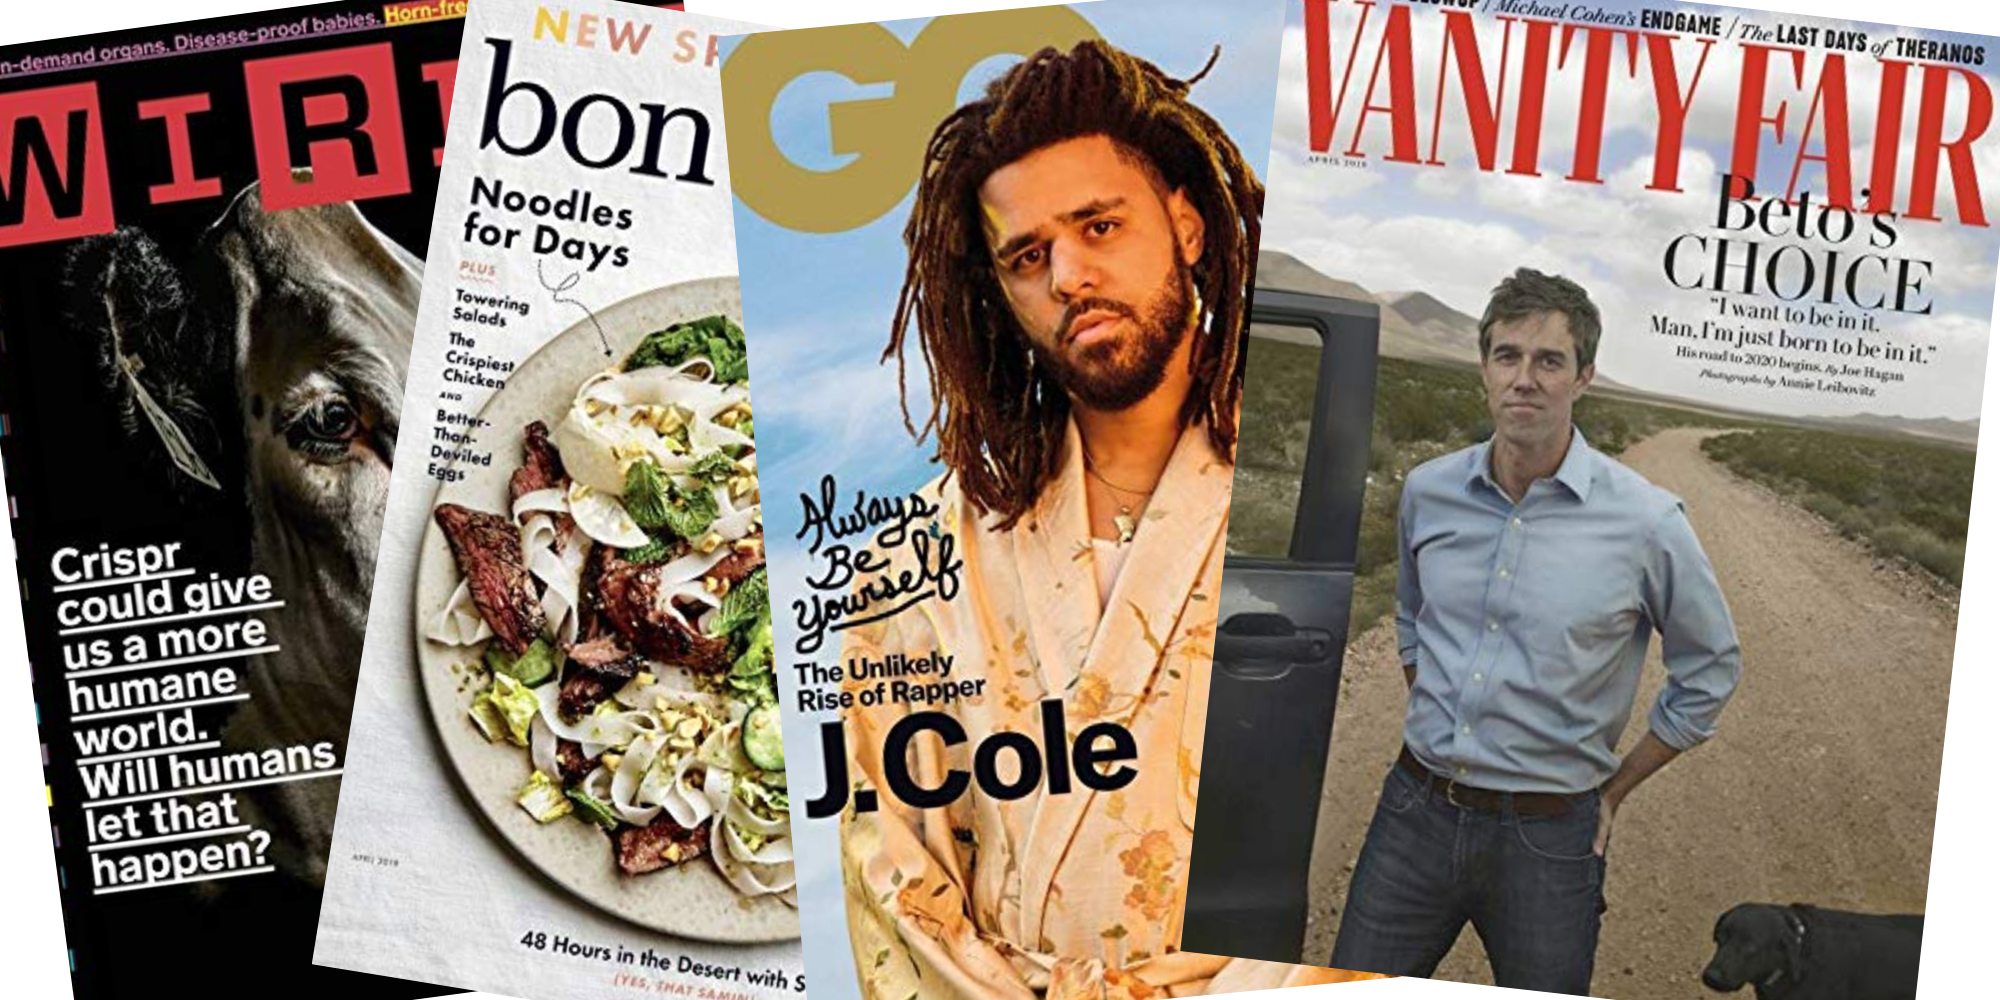 Amazon offers Prime members magazine subs for $1: Wired, GQ, Vanity Fair, many more